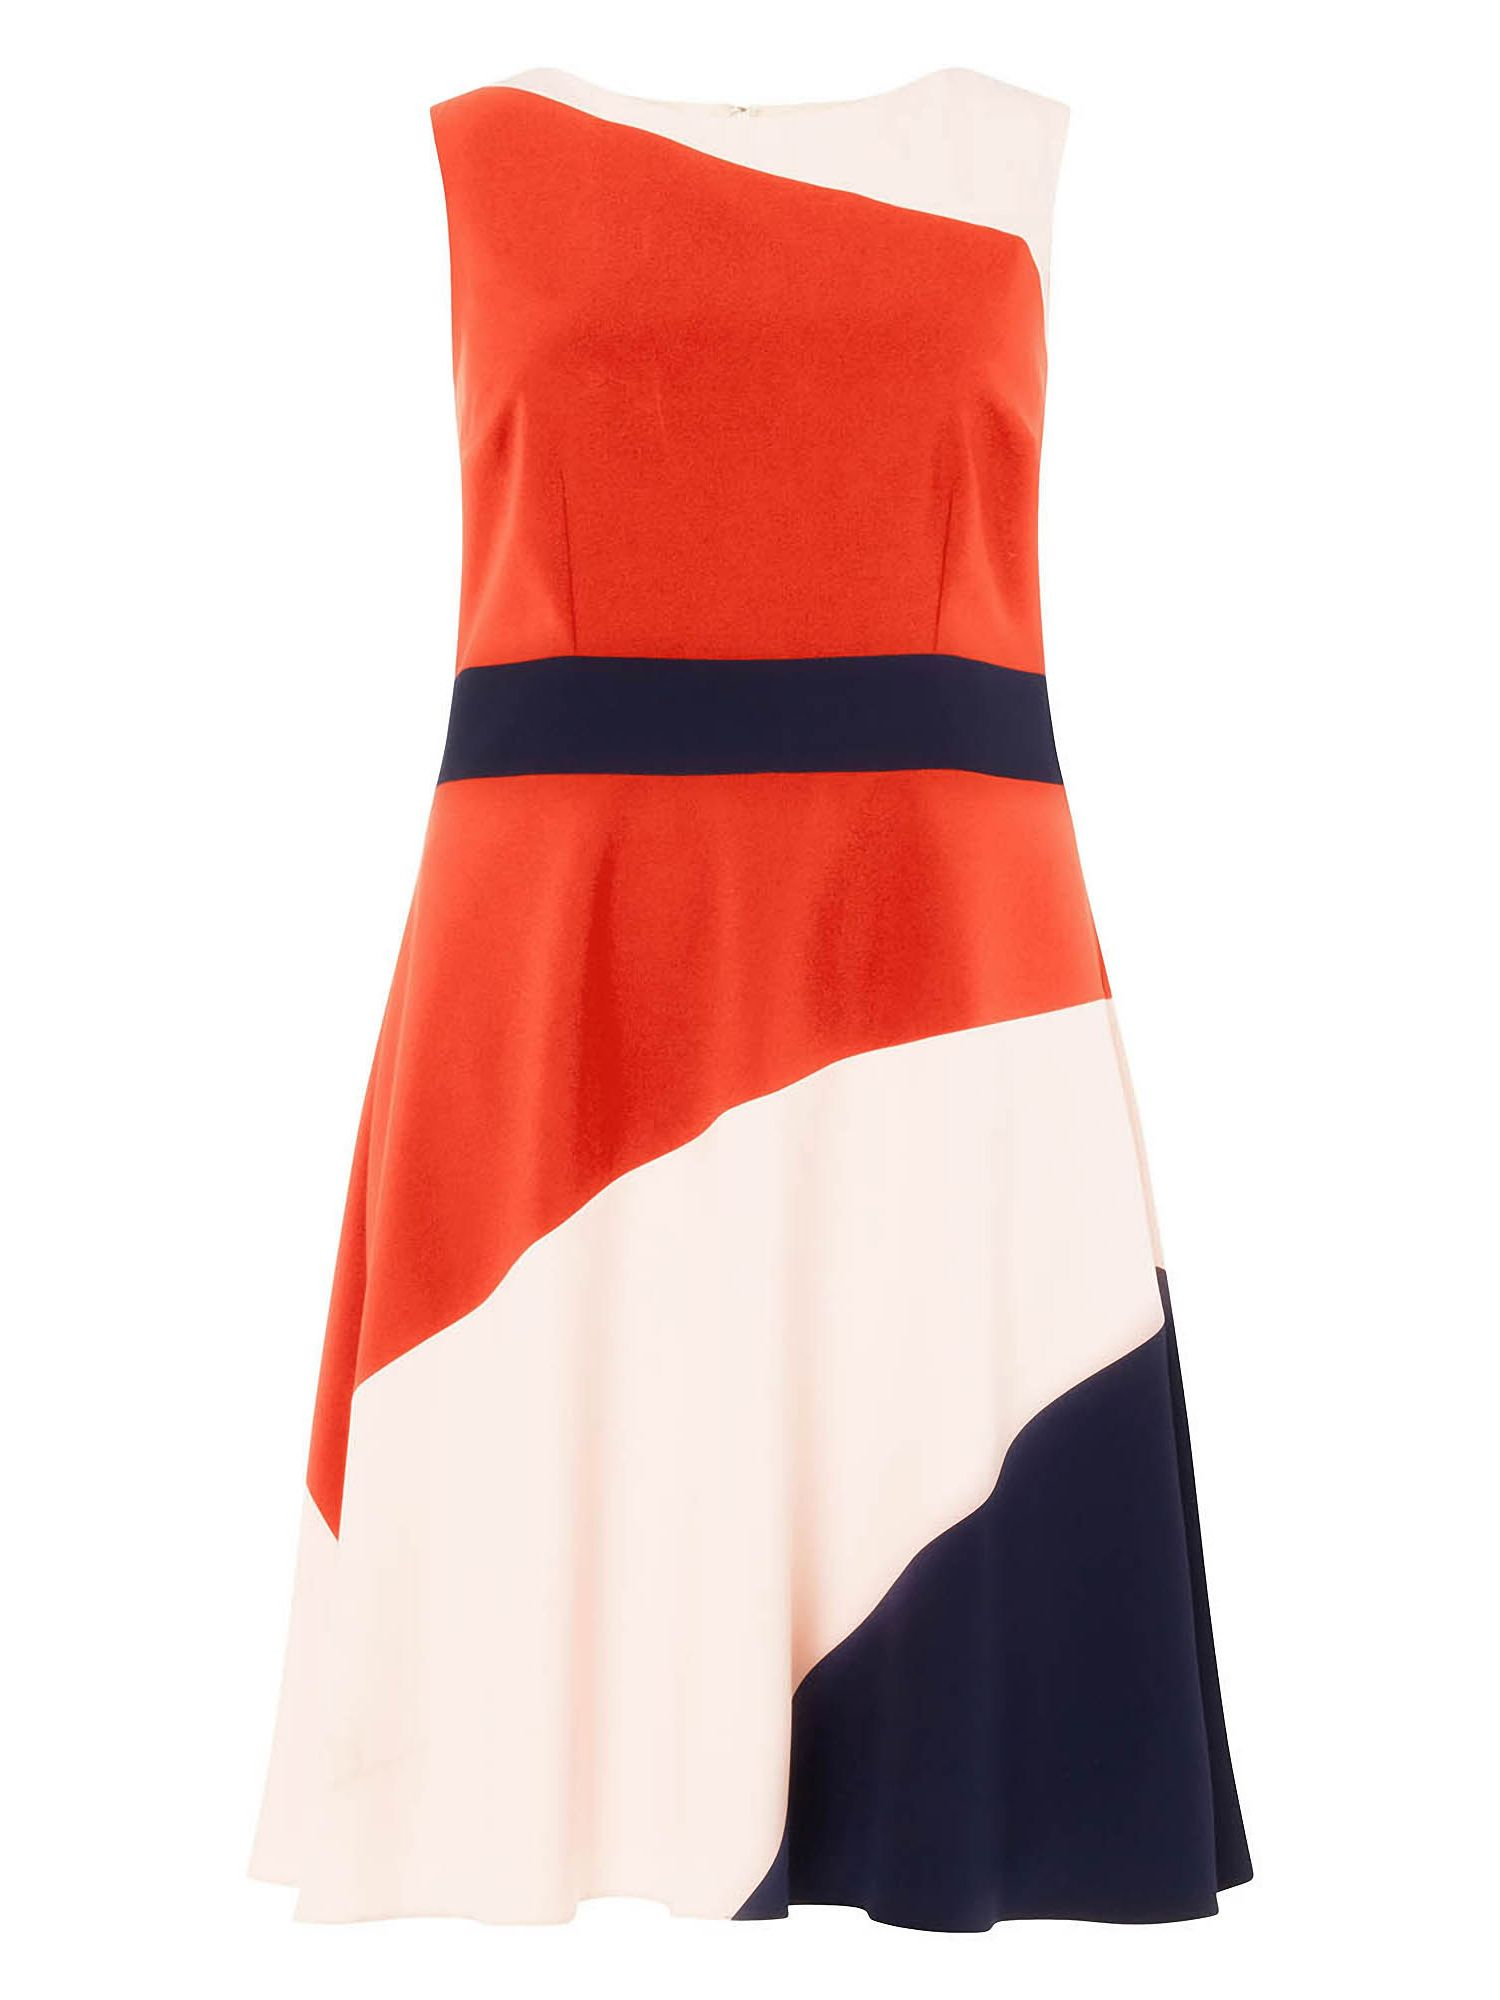 Studio 8 Gabriella Dress, Multi-Coloured